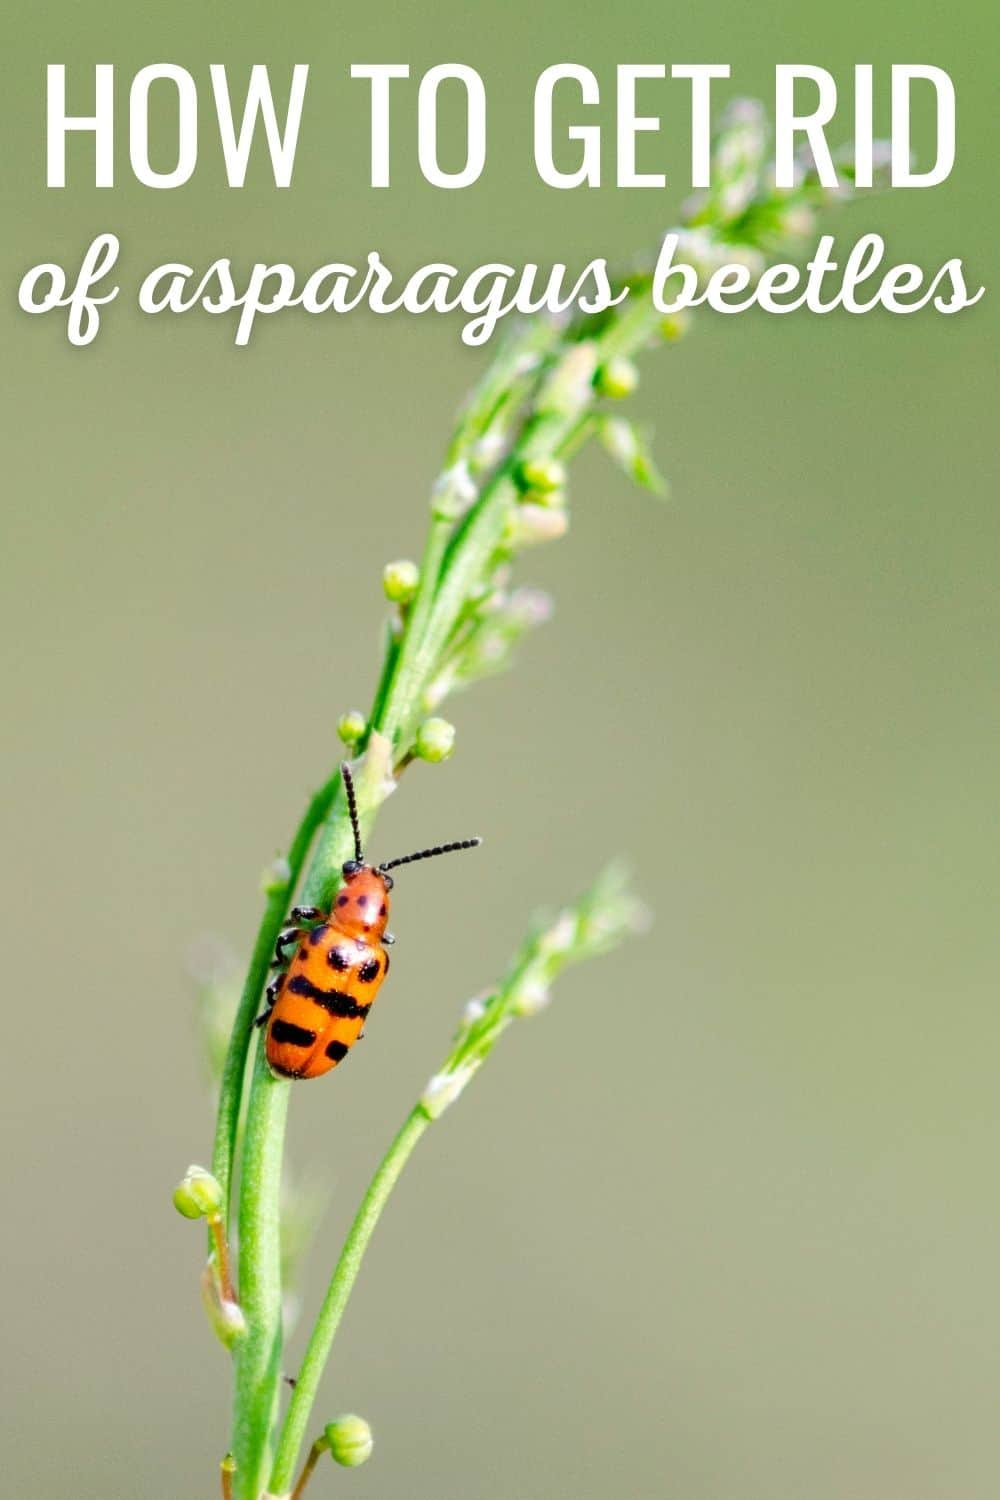 How to get rid of asparagus beetles